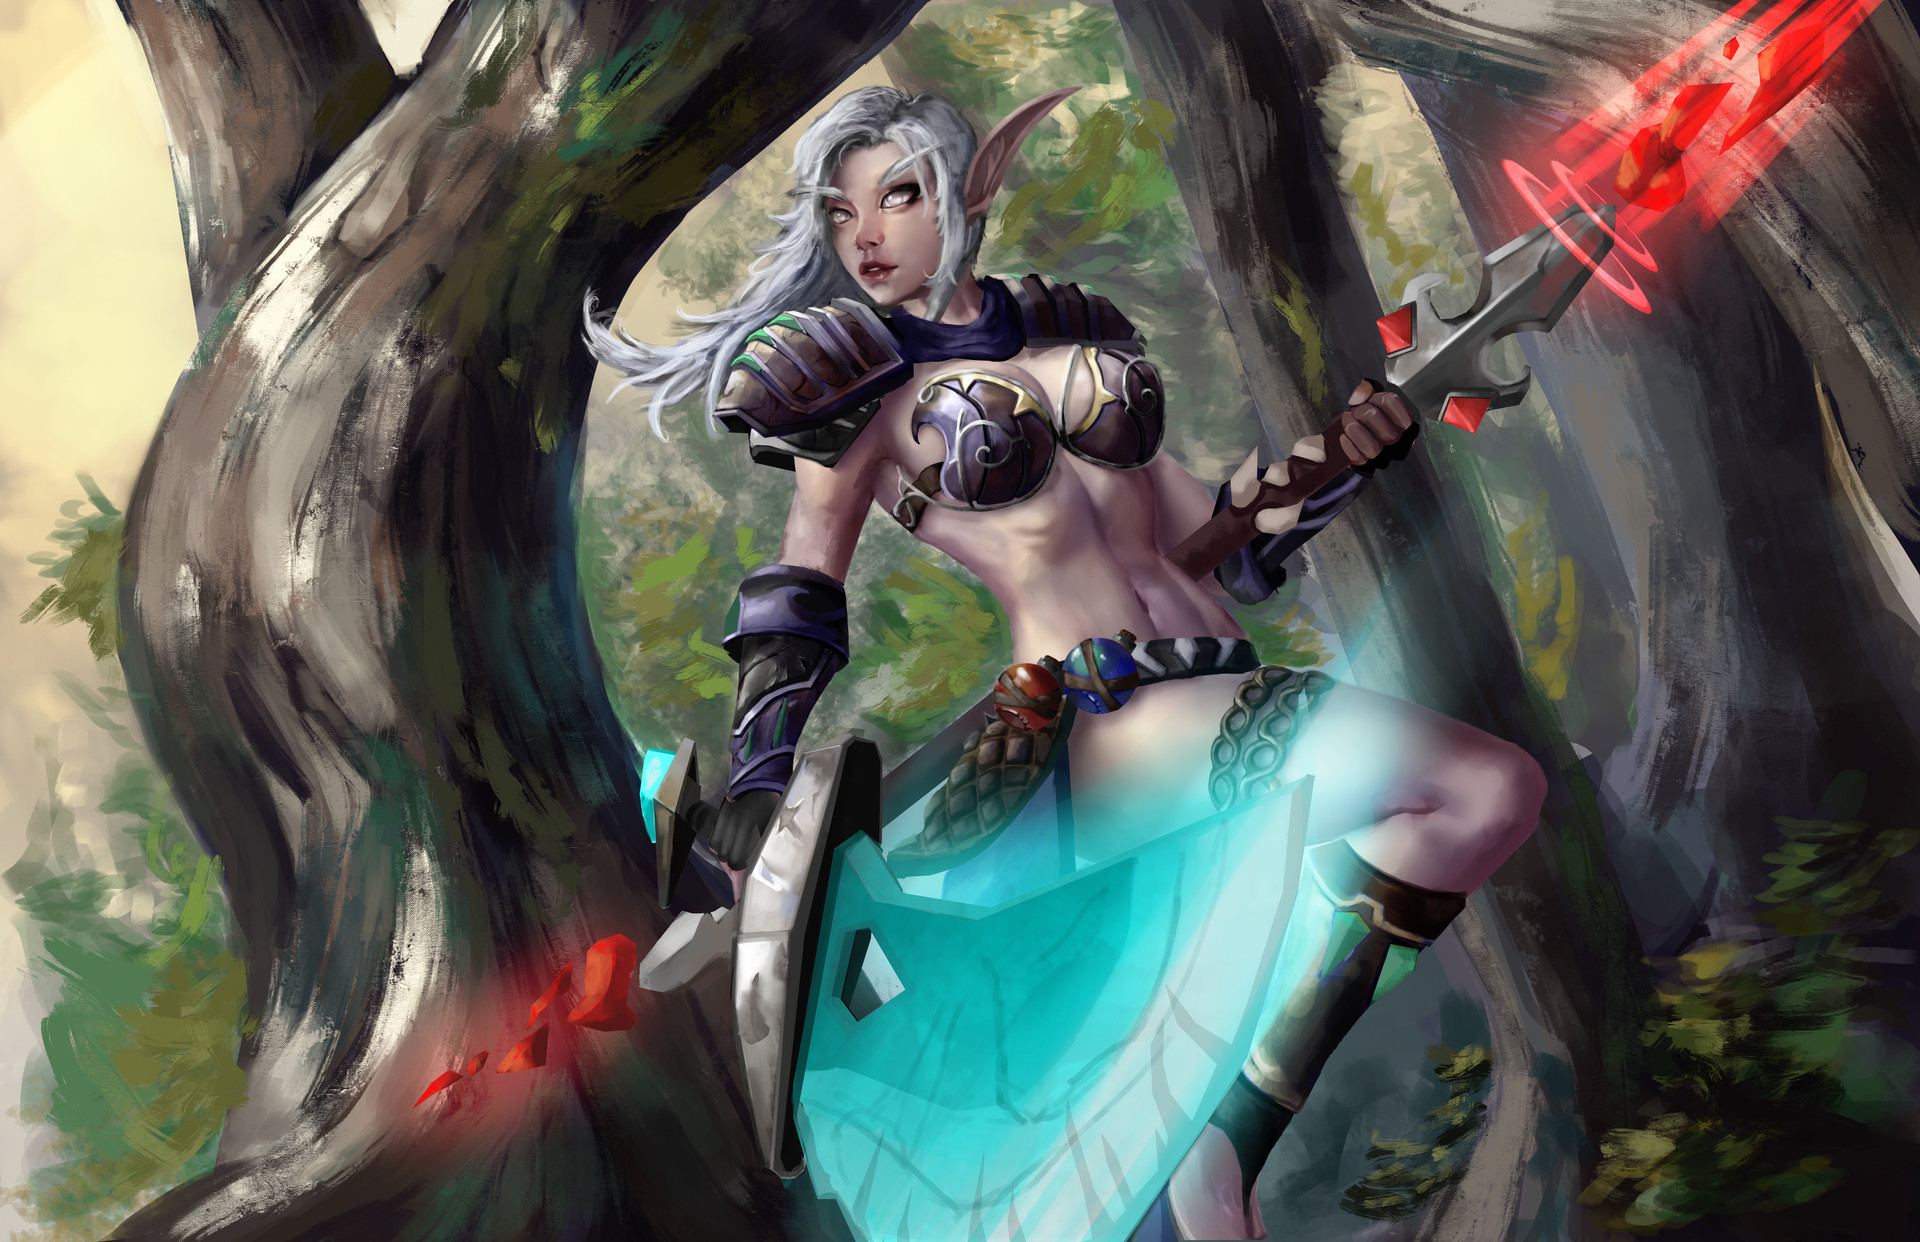 Night elves nyde adult gallery